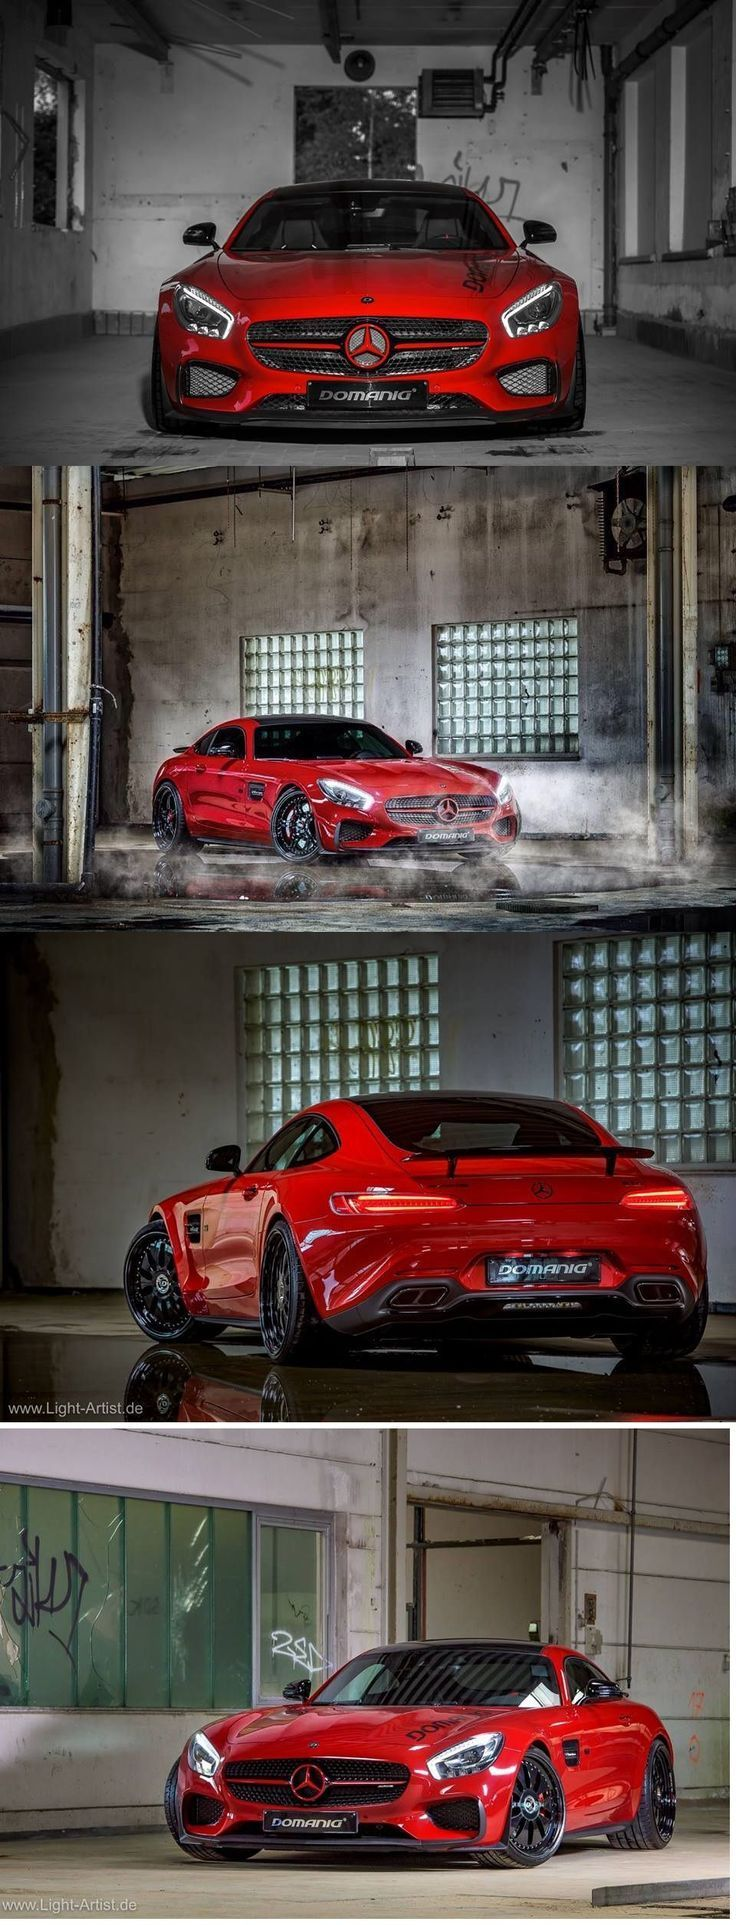 Mercedes AMG GT S from Domanig TuningCult.com Support for all tuning enthusiasts. Come – #all #amg #domanig # for